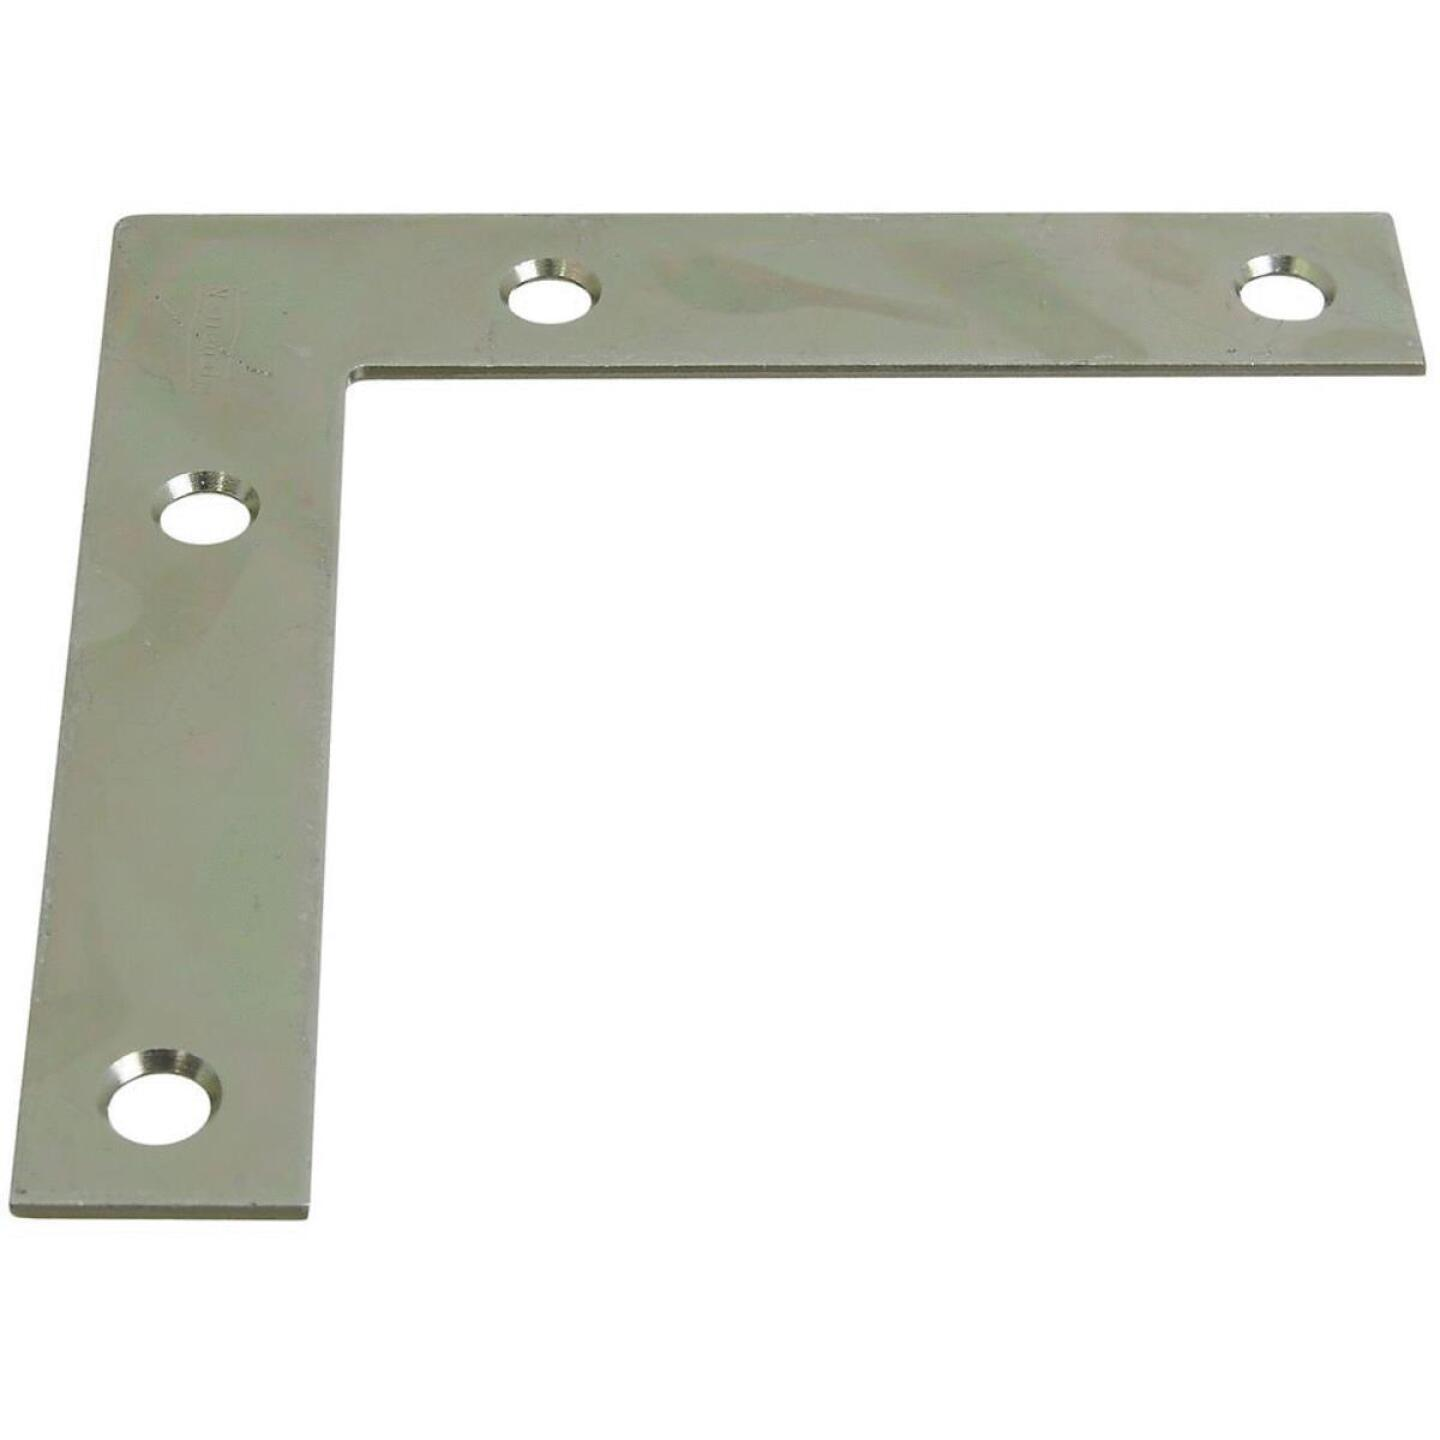 National Catalog 117 4 In. x 3/4 In. Zinc Flat Corner Iron Image 1